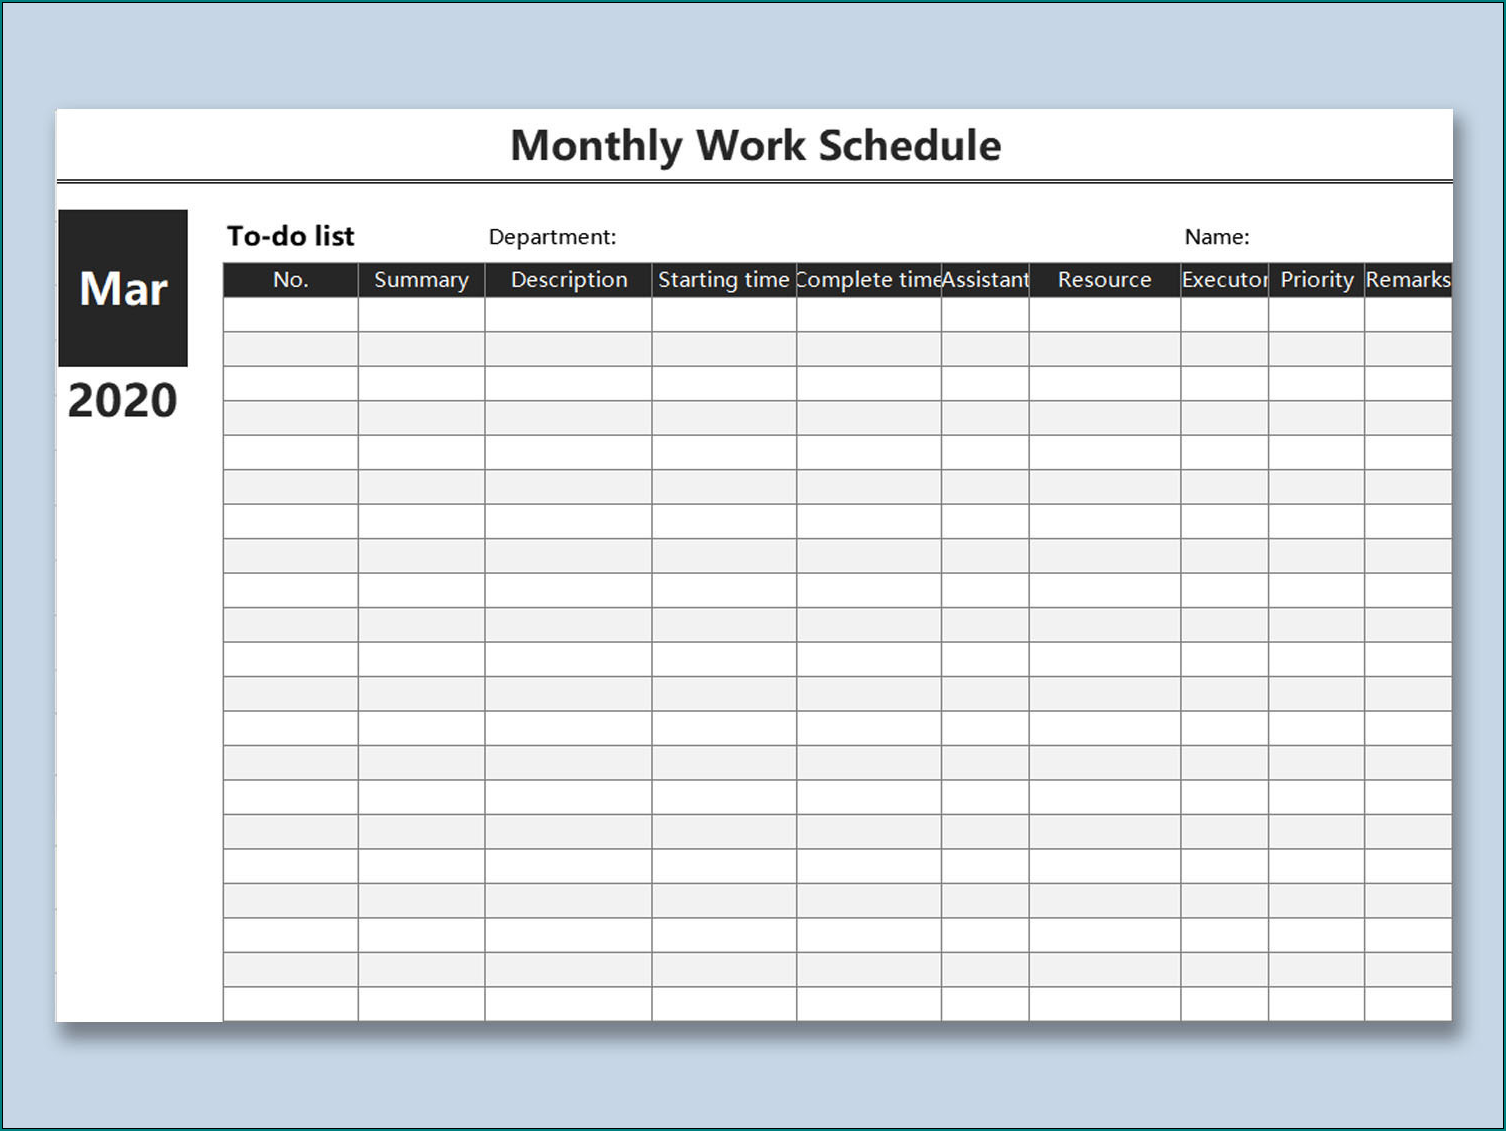 Example of Monthly Work Schedule Template